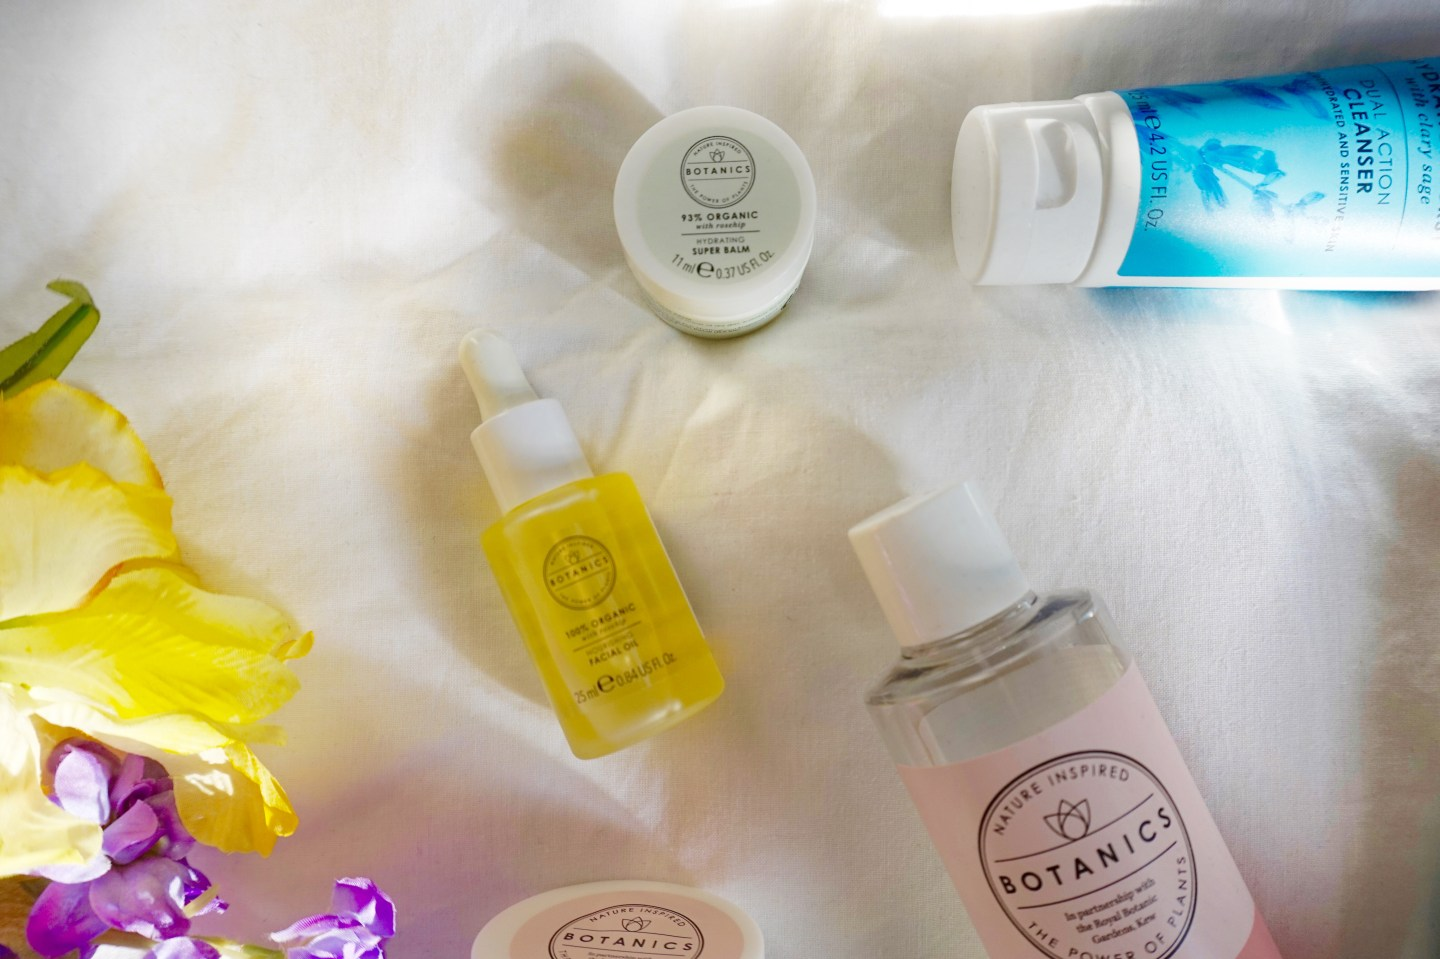 boots-botanics-100-organic-facial-oil-organic-super-balm--day-lotion-super-balm-white-blue-raychel-says